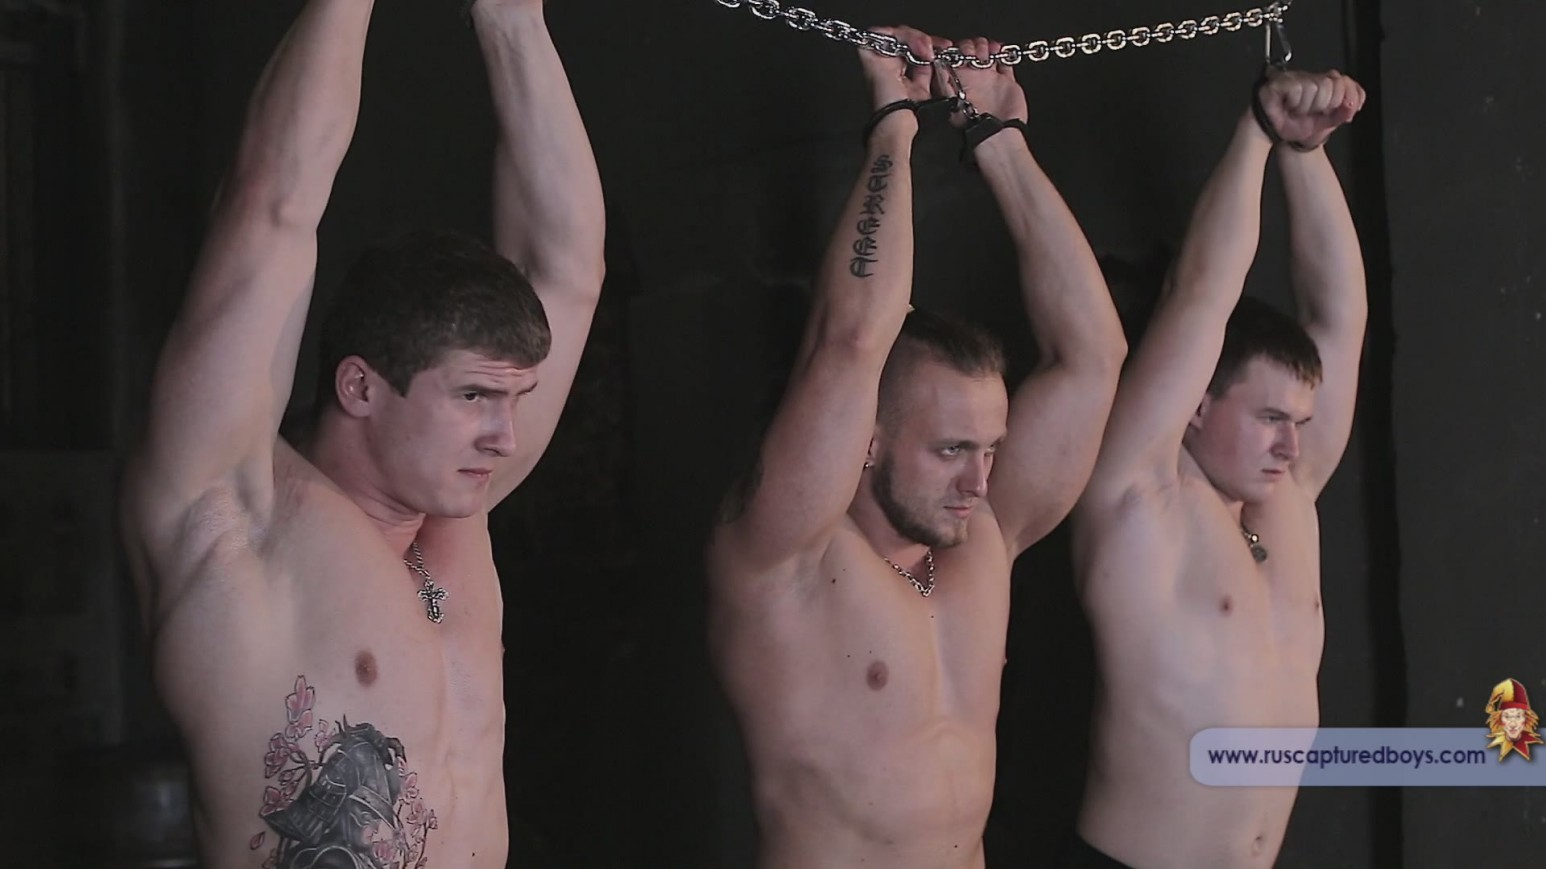 Hot muscle men naked tied up, married man fuck porn